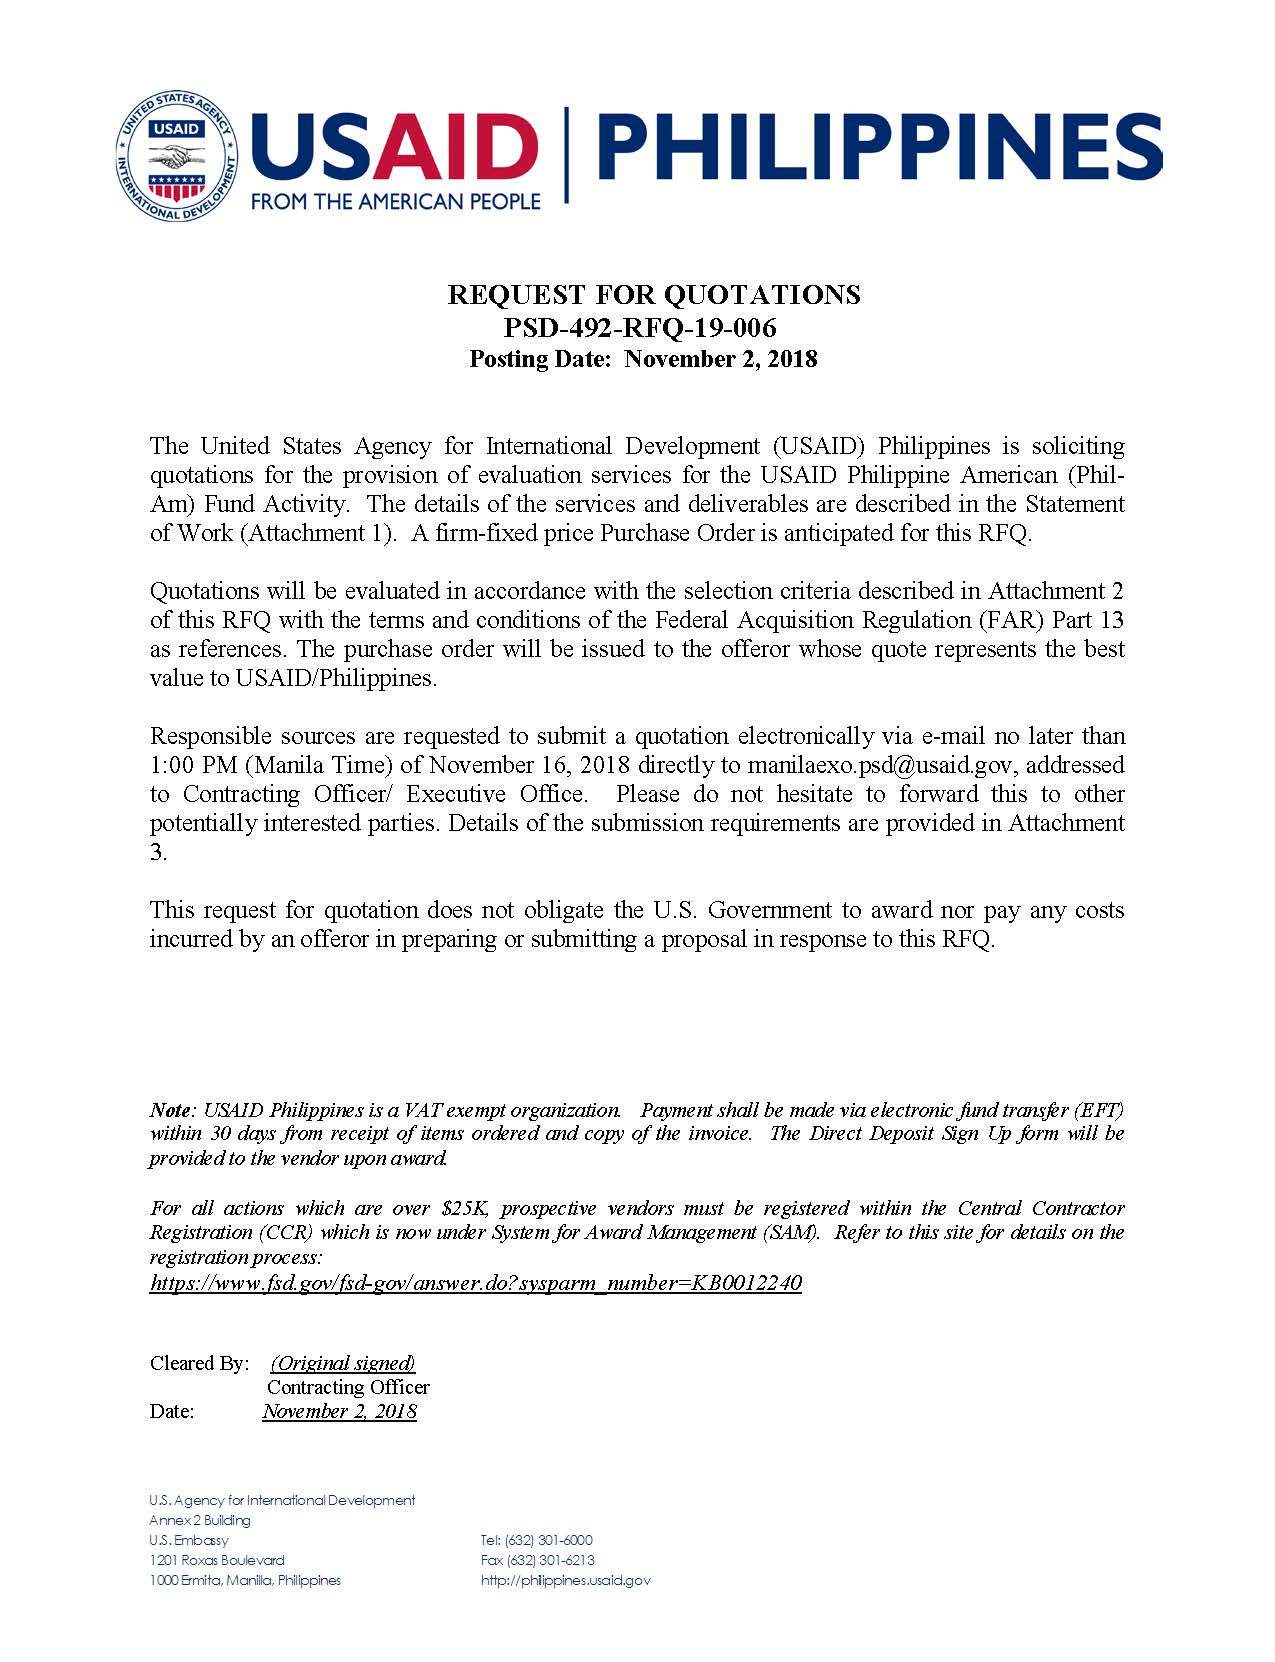 Request for Quotation: Provision of Evaluation Services for USAID Philippine American (Phil‐Am) Fund Activity